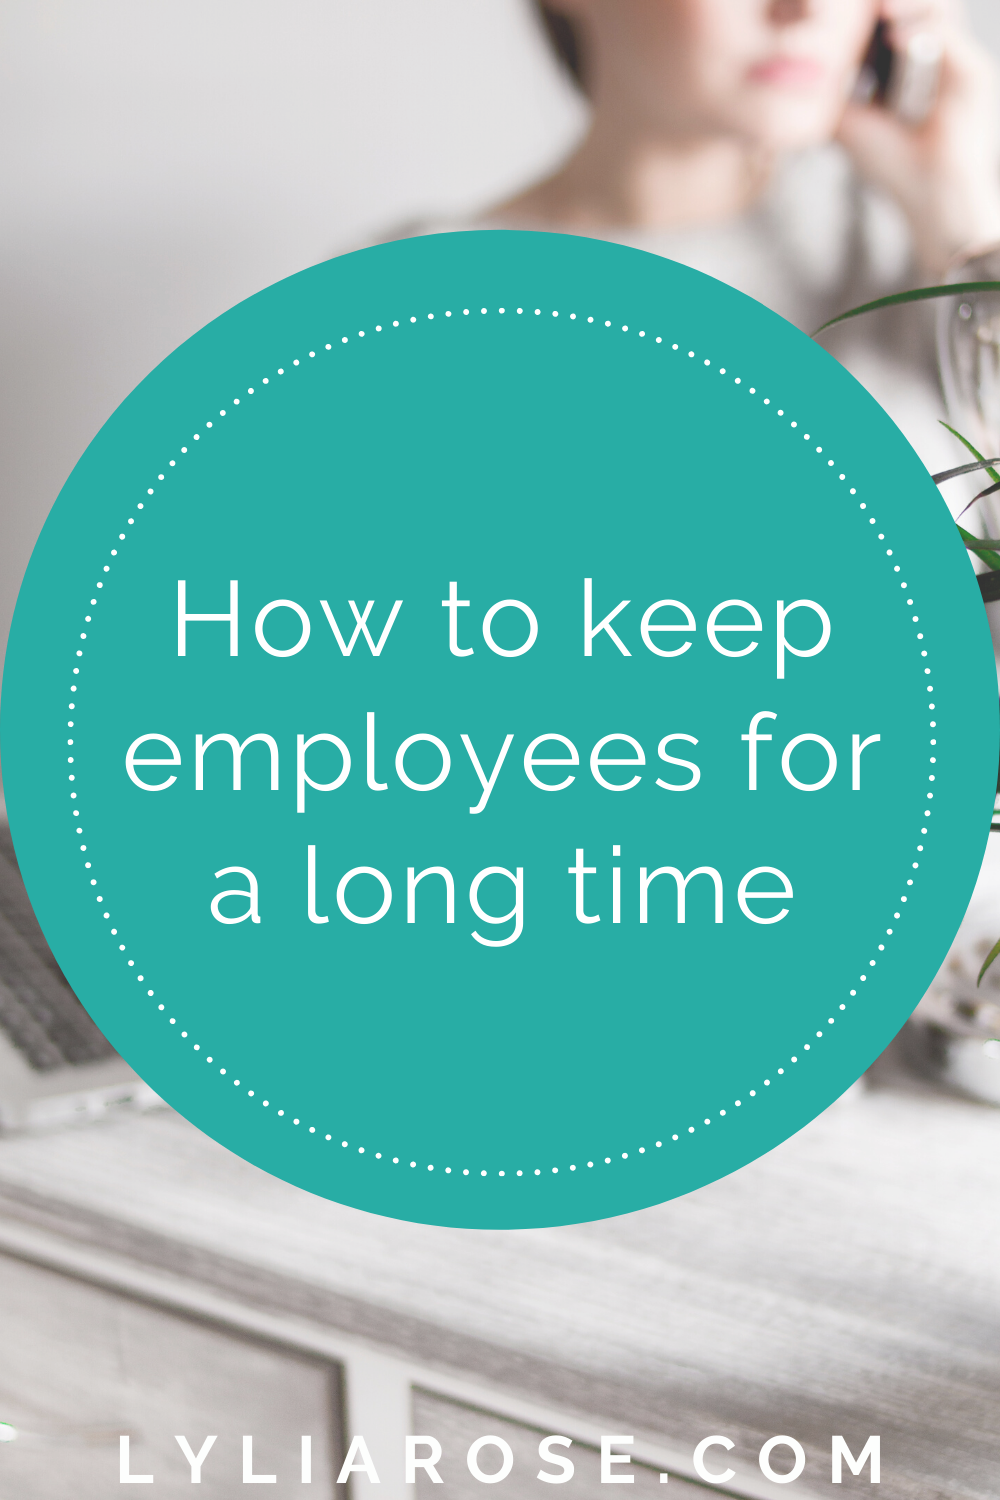 How to keep employees for a long time